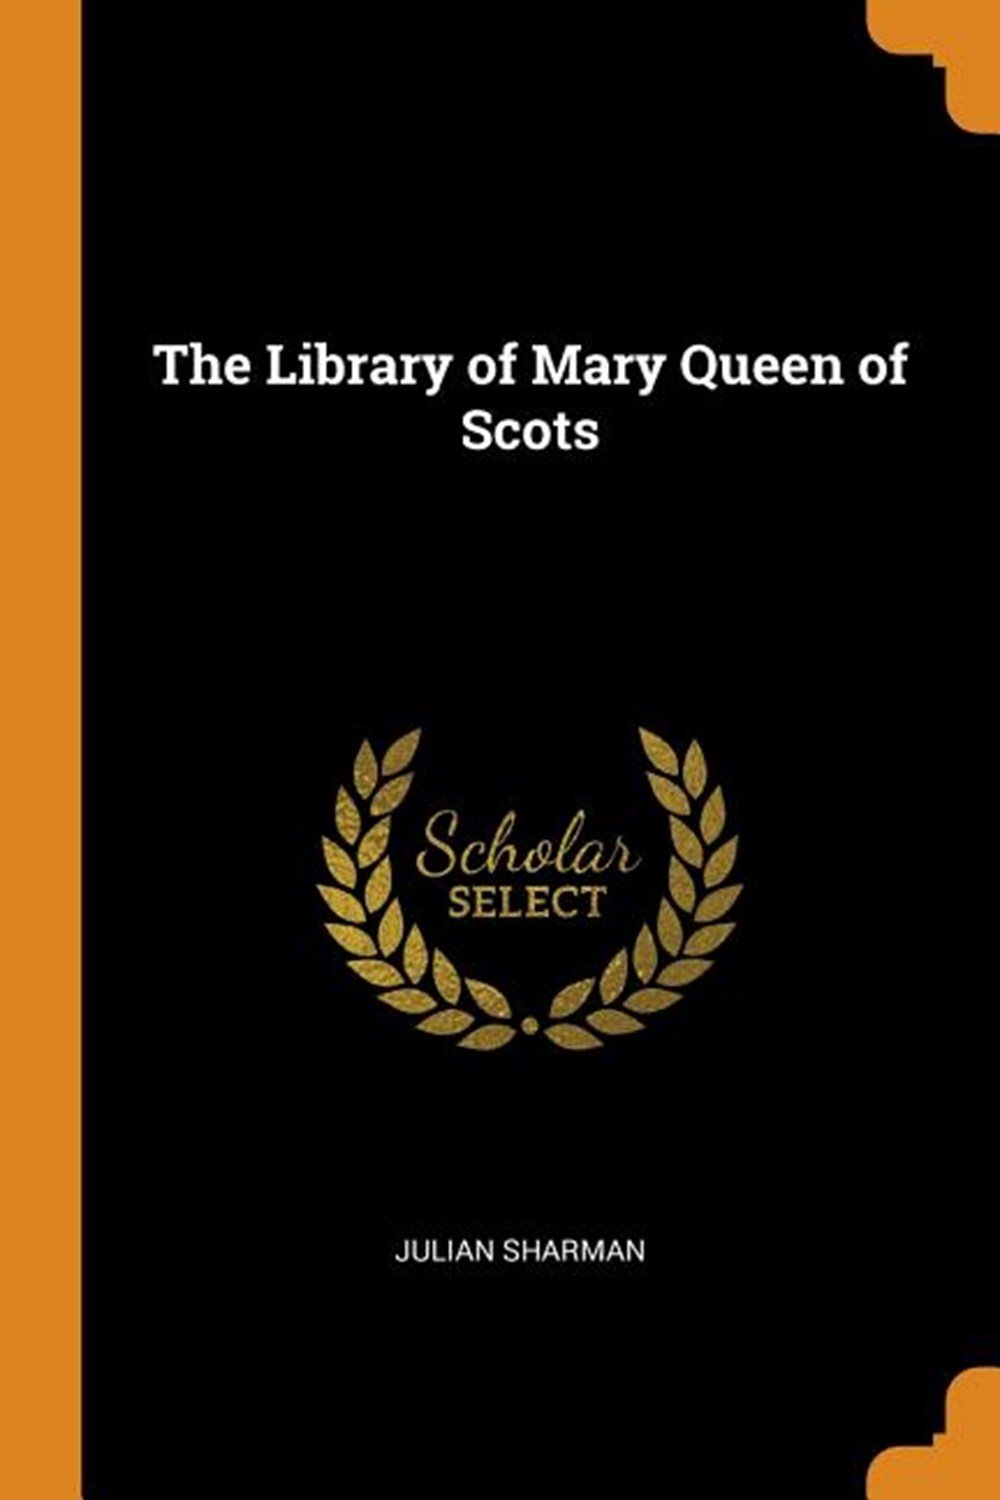 Library of Mary Queen of Scots